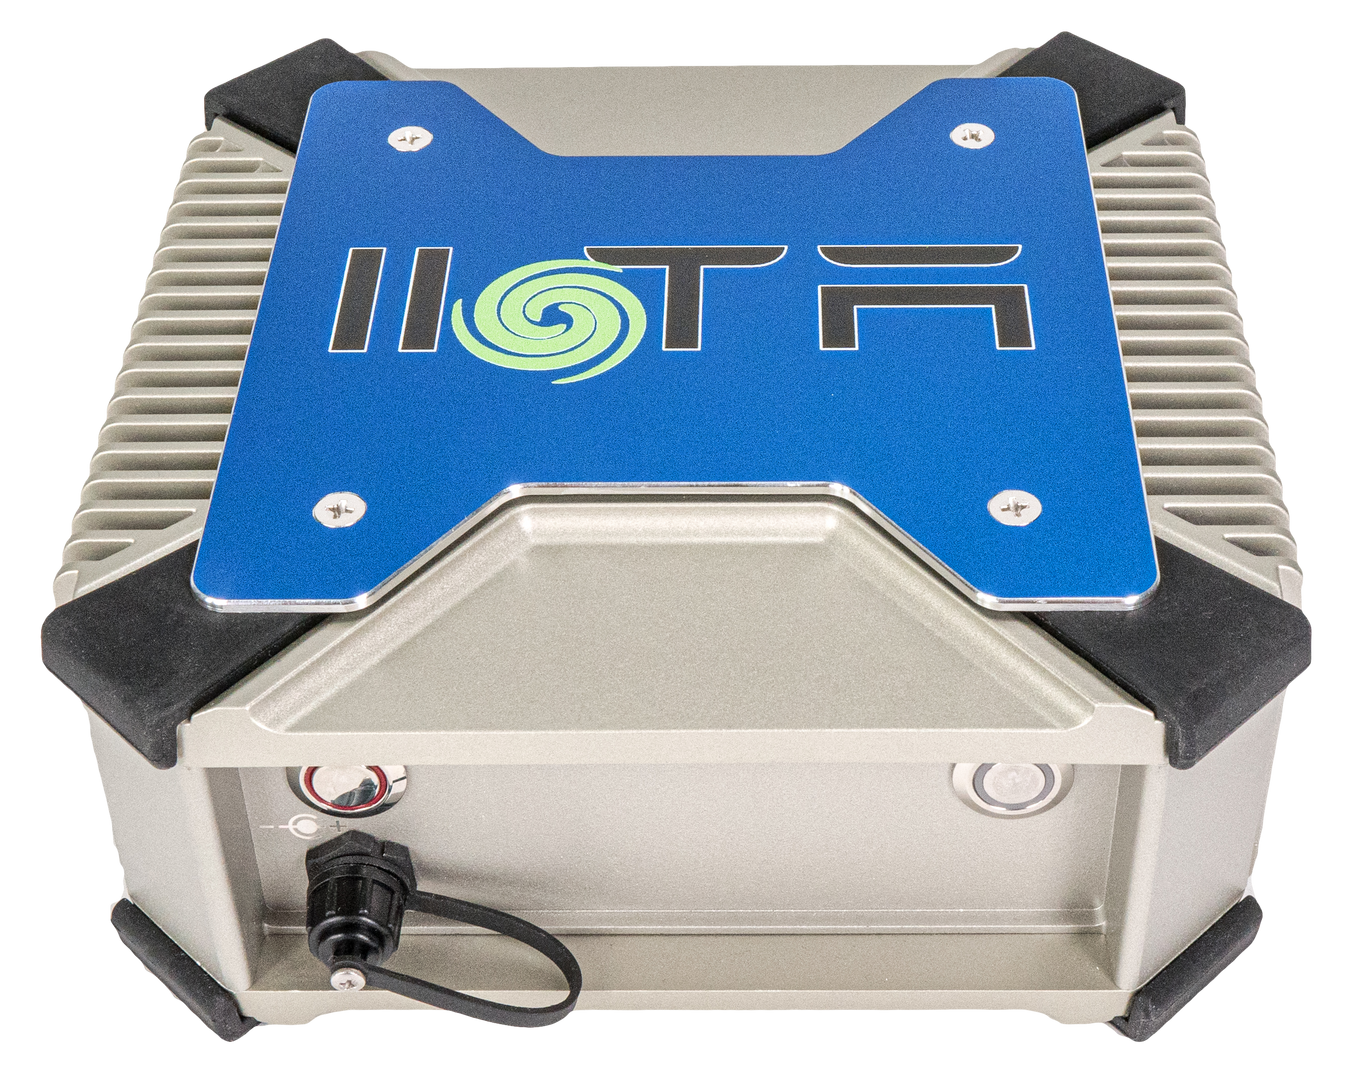 IIoTA™ Industrial Internet of Things Appliance - angled view